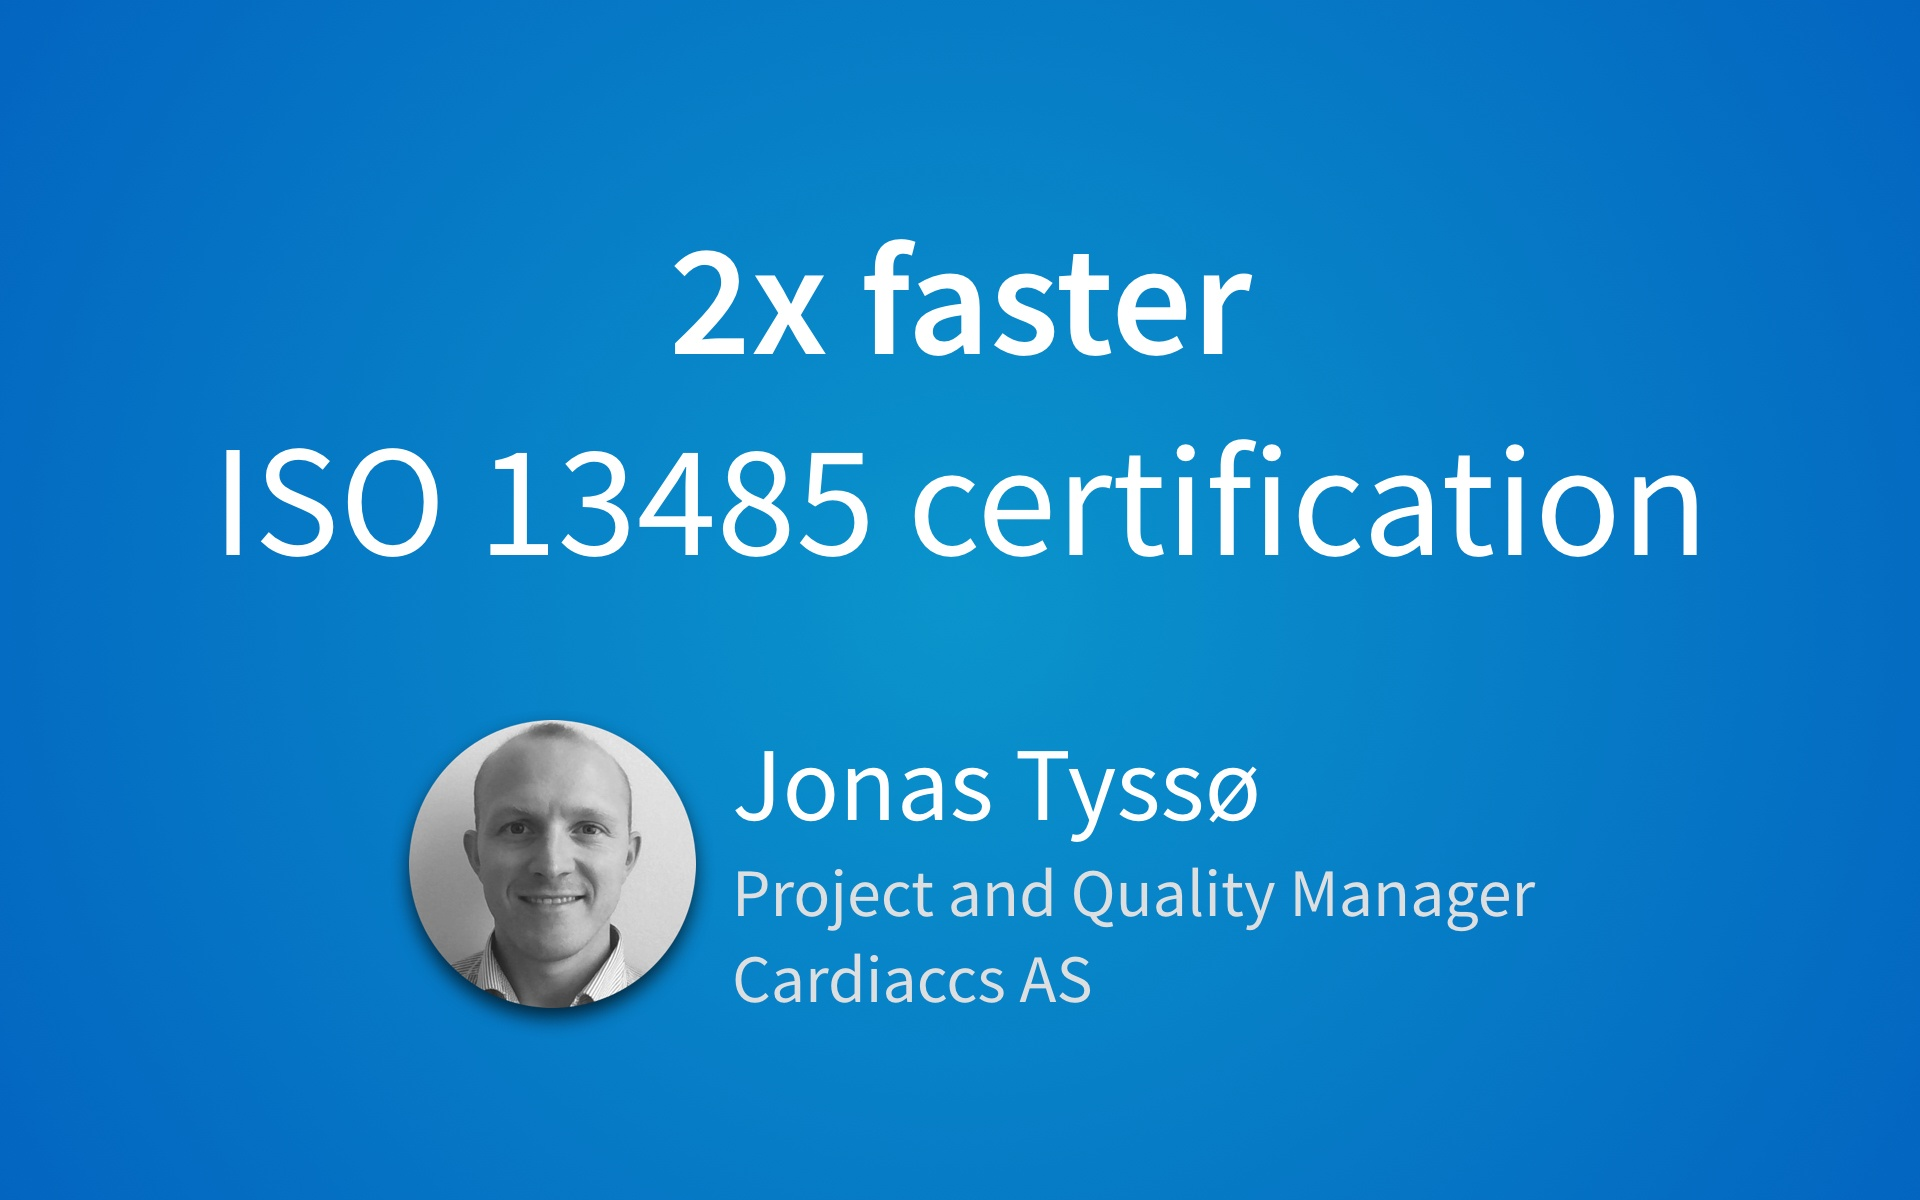 Cardiaccs 2X Faster ISO 13485 Certification